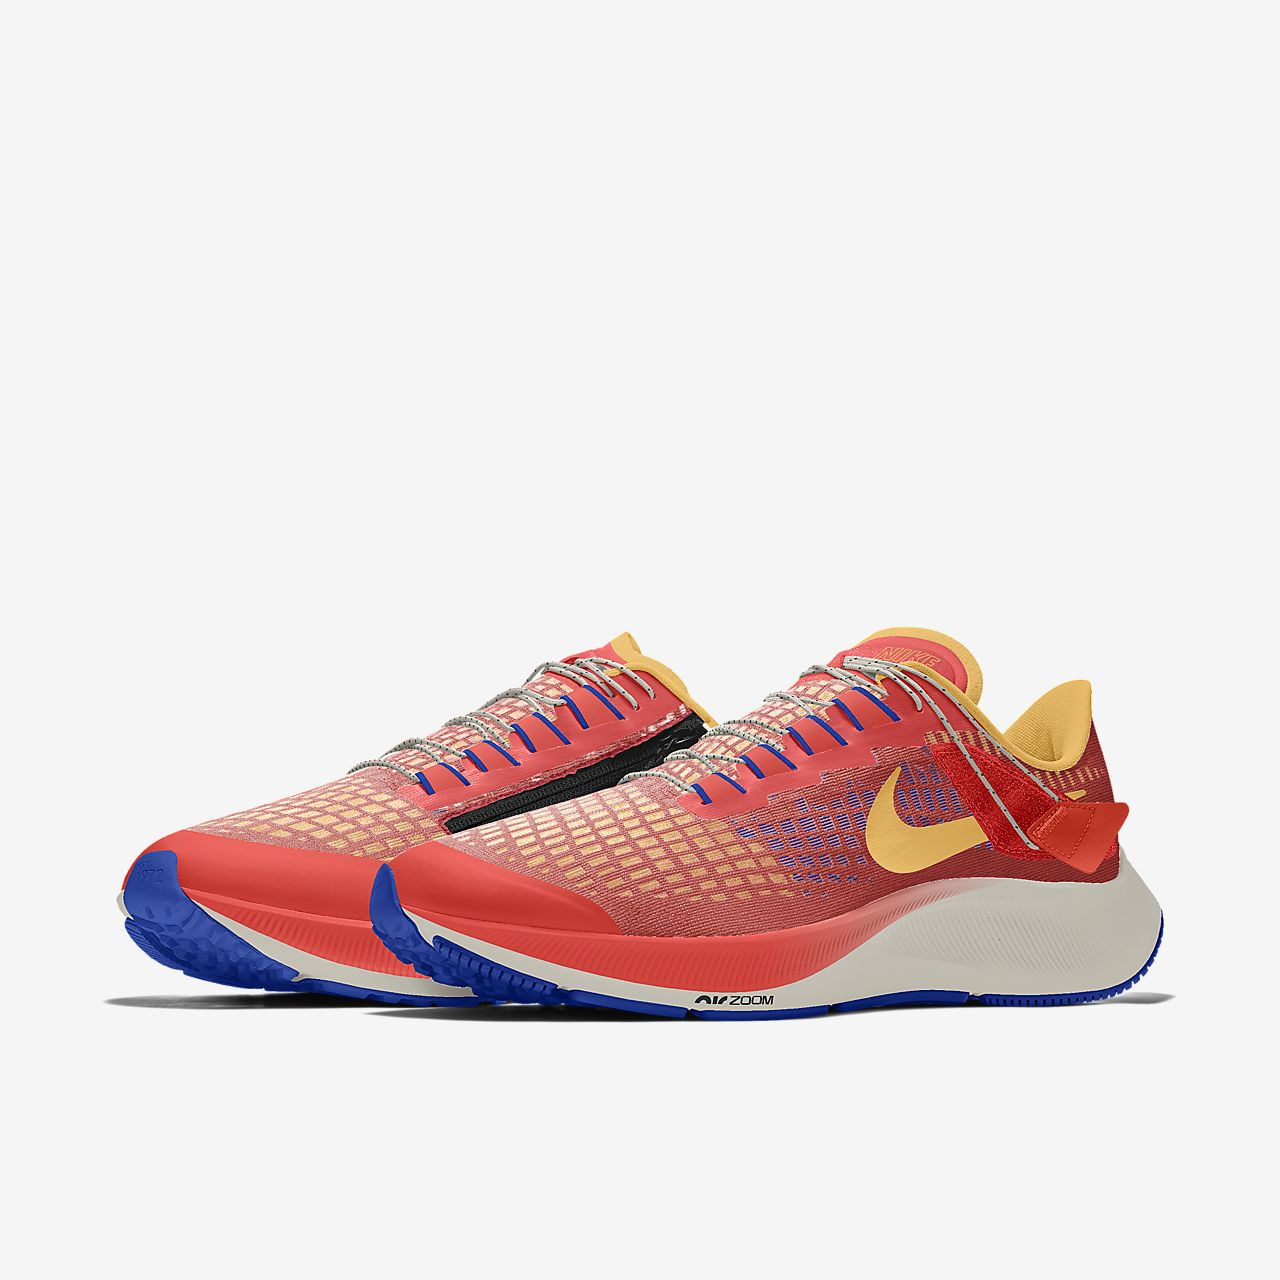 Nike Air Zoom Pegasus 37 Flyease By You Custom Women's Running Shoe